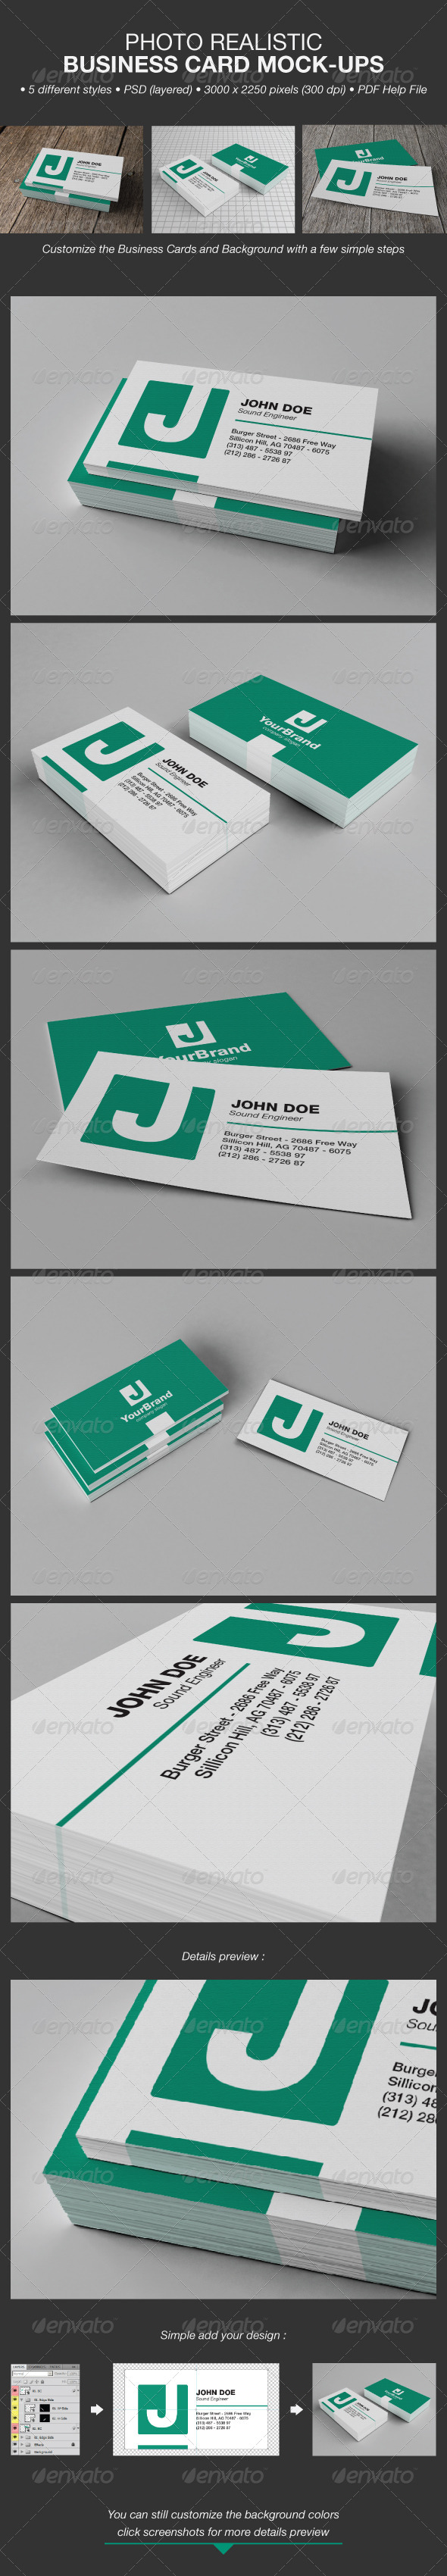 GraphicRiver Photo Realistic Business Card Mock-Ups 4681480